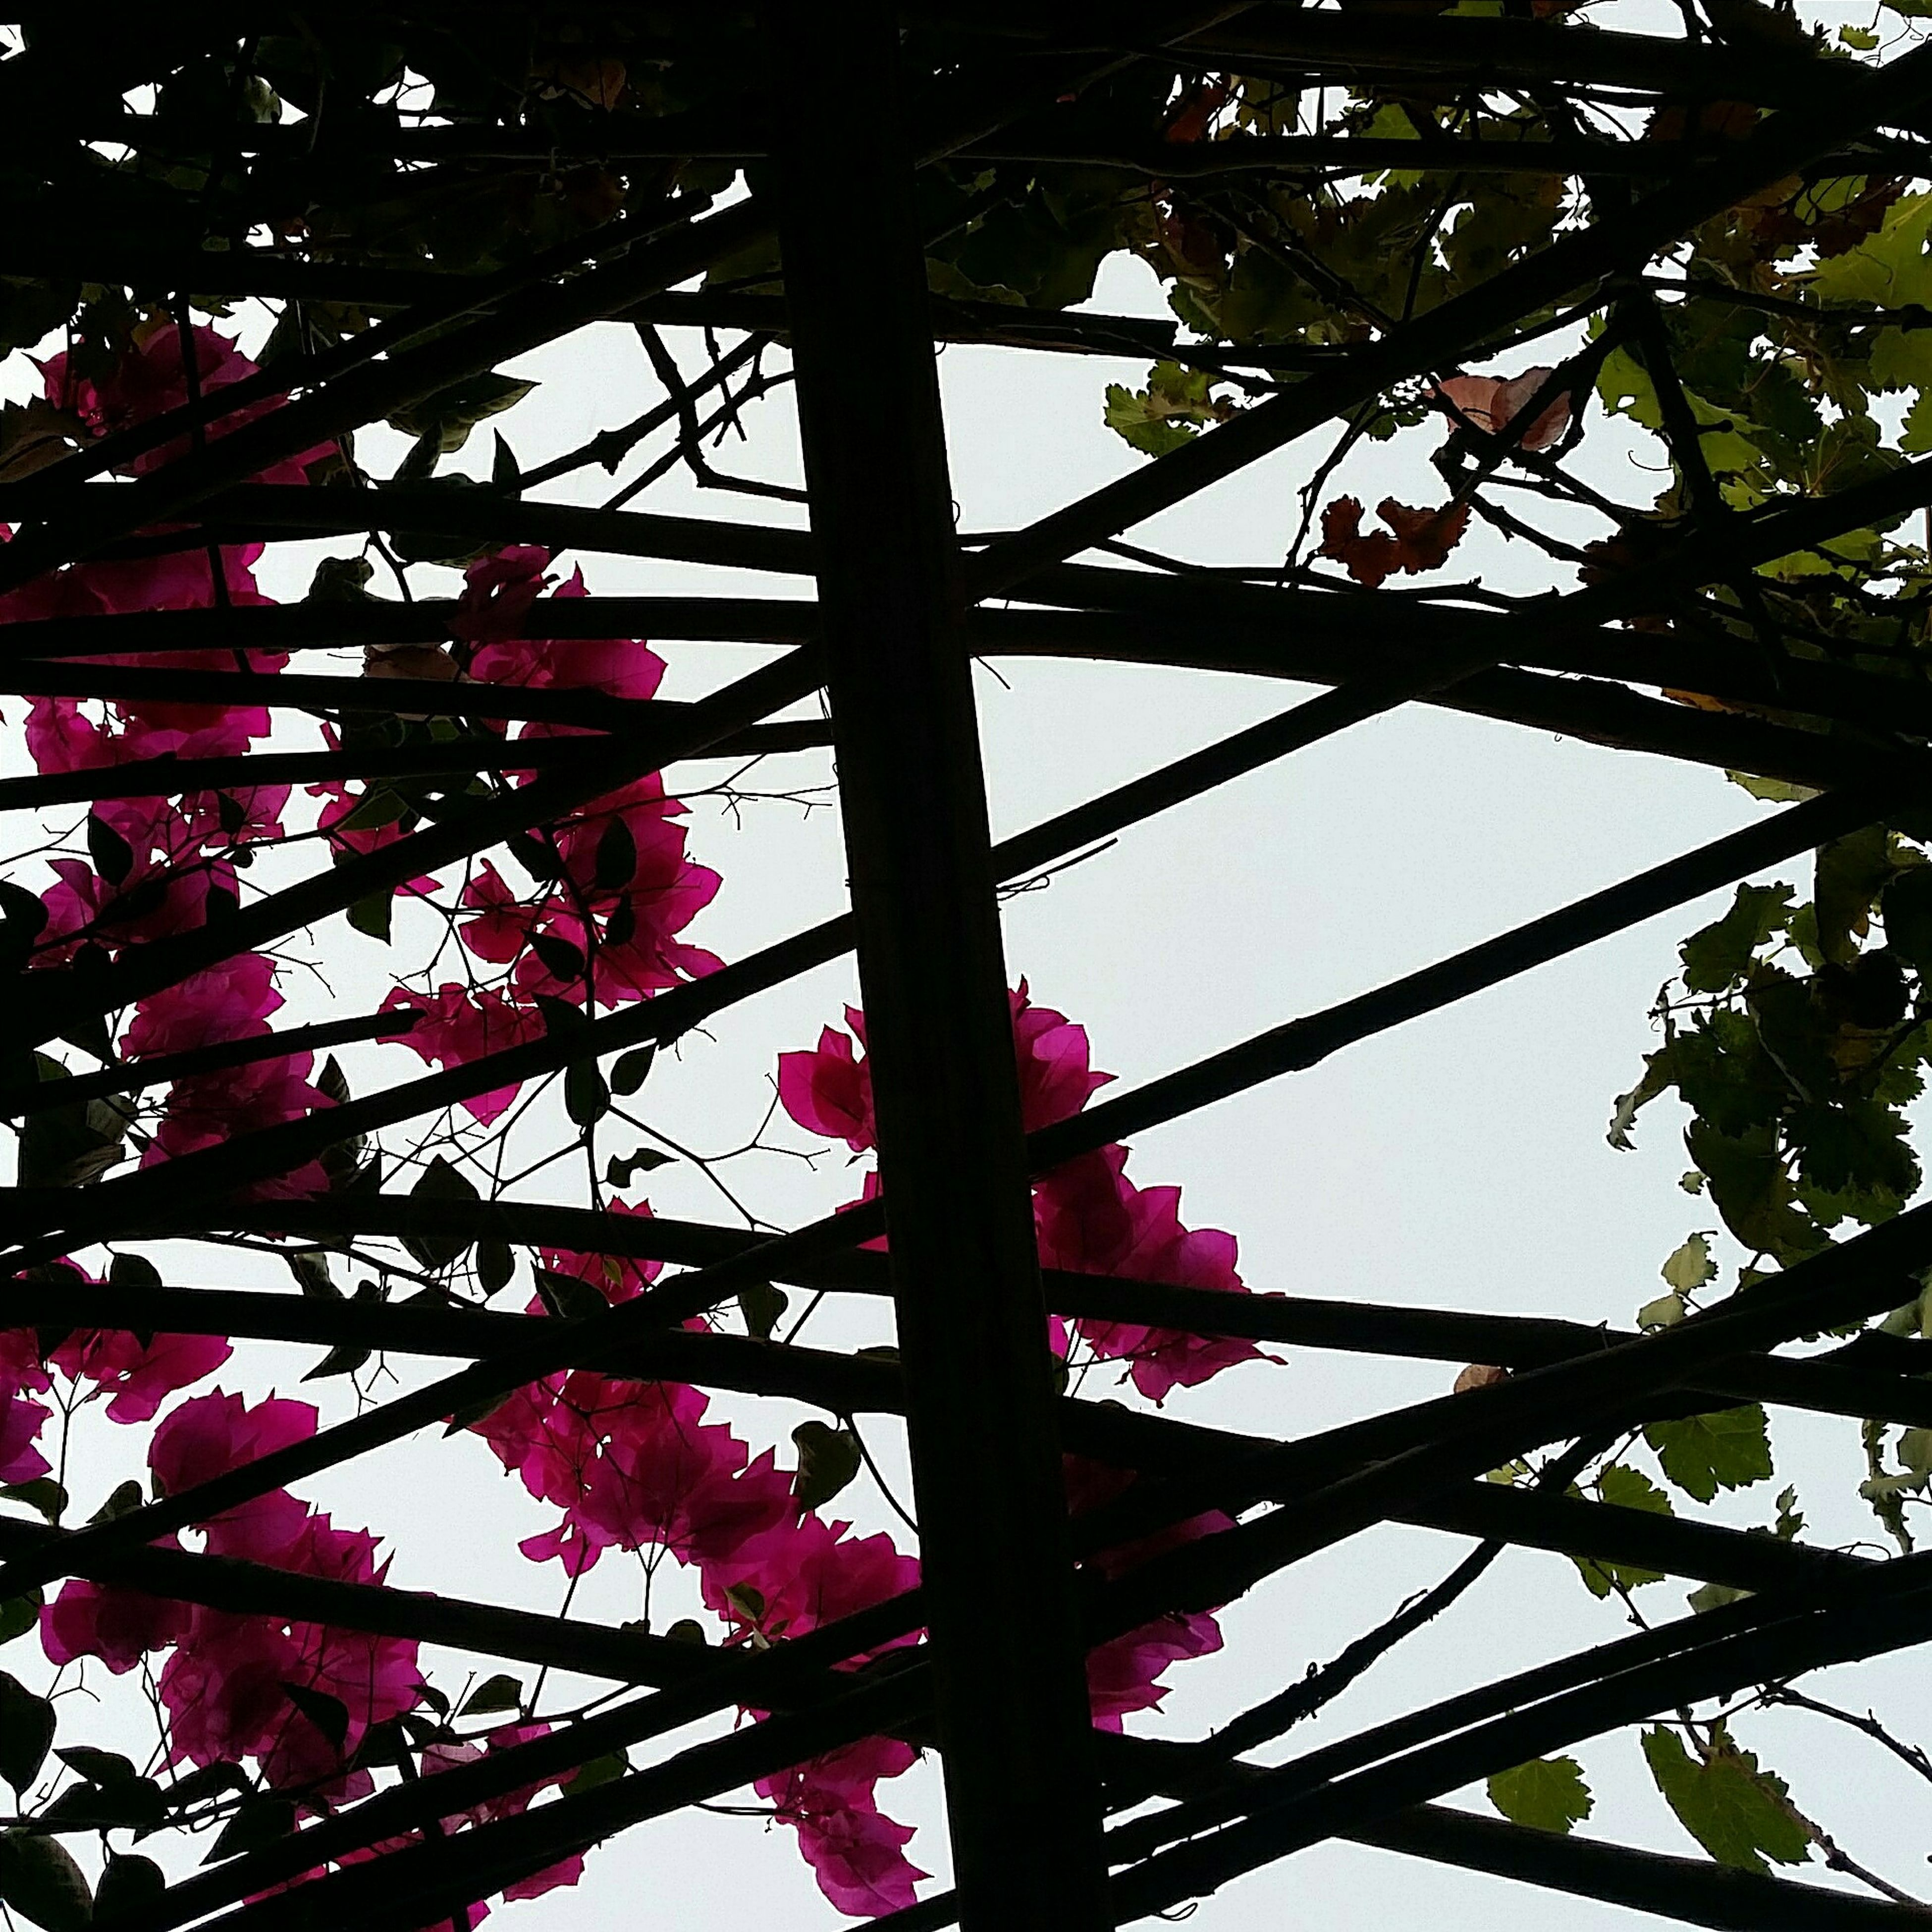 low angle view, growth, tree, branch, beauty in nature, nature, flower, freshness, leaf, red, fragility, sky, outdoors, day, backgrounds, pink color, close-up, blossom, no people, clear sky